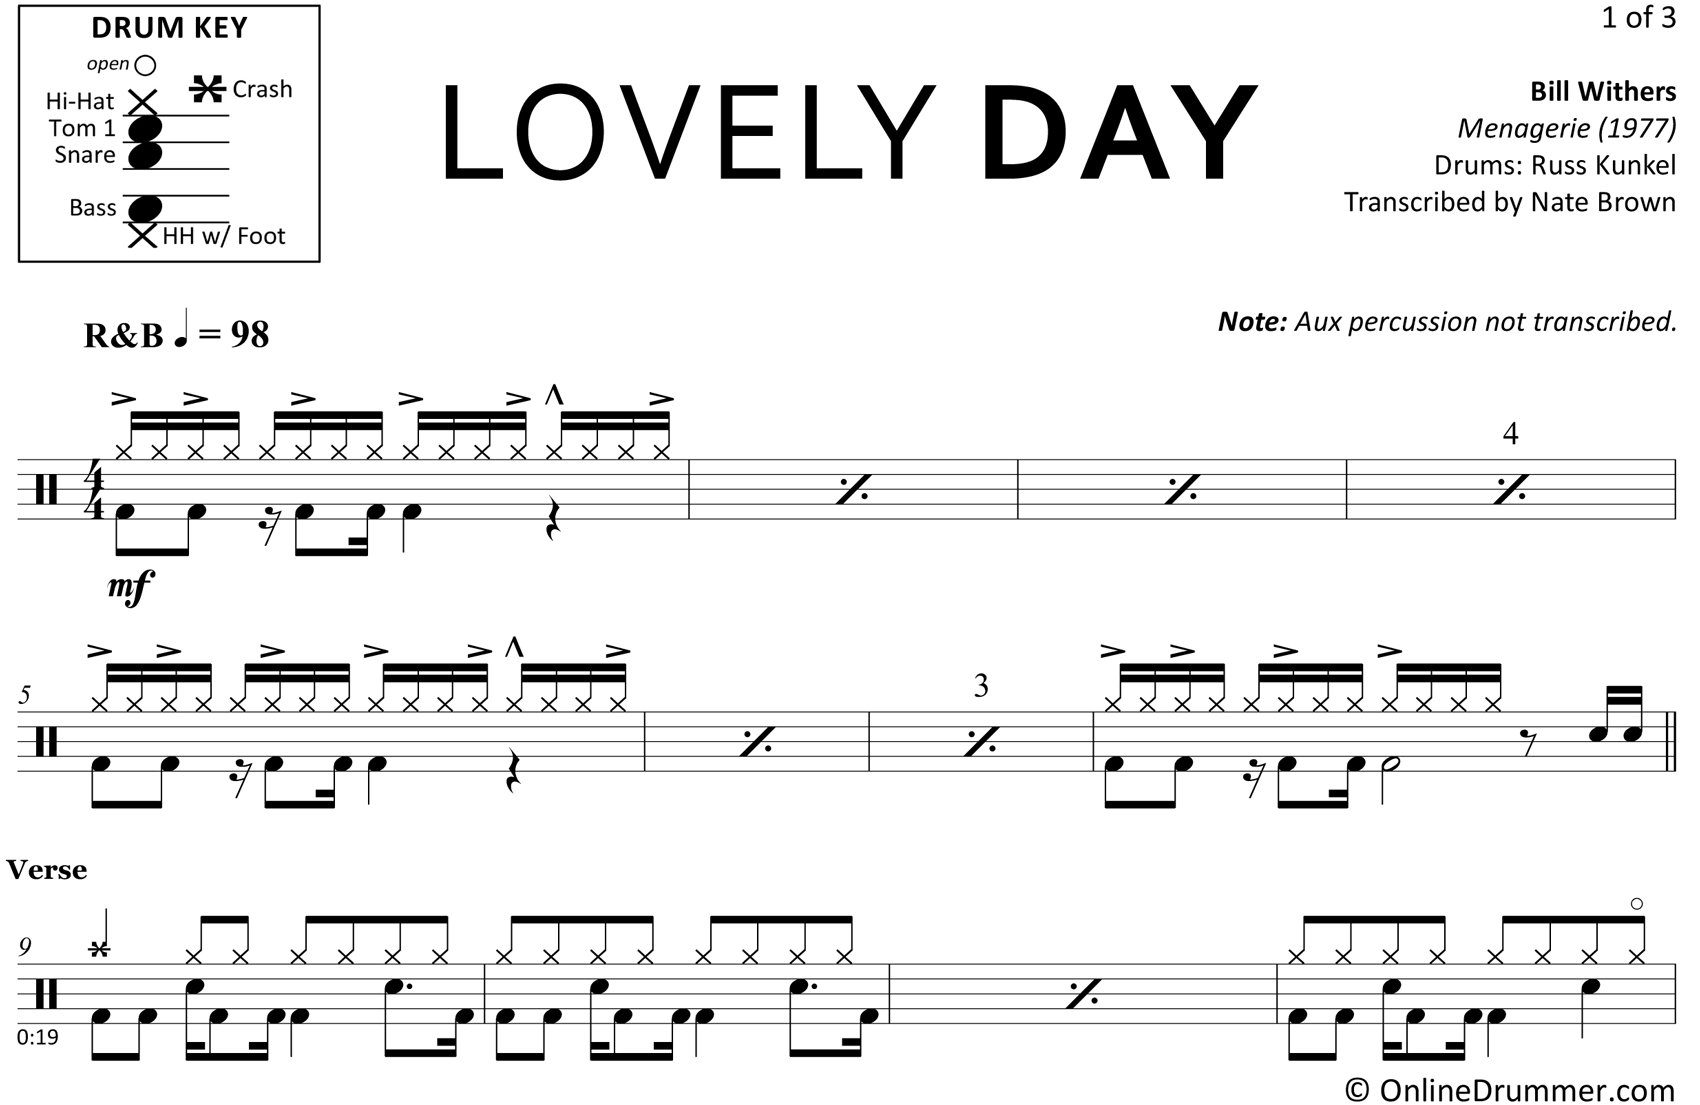 Lovely Day - Bill Withers - Drum Sheet Music